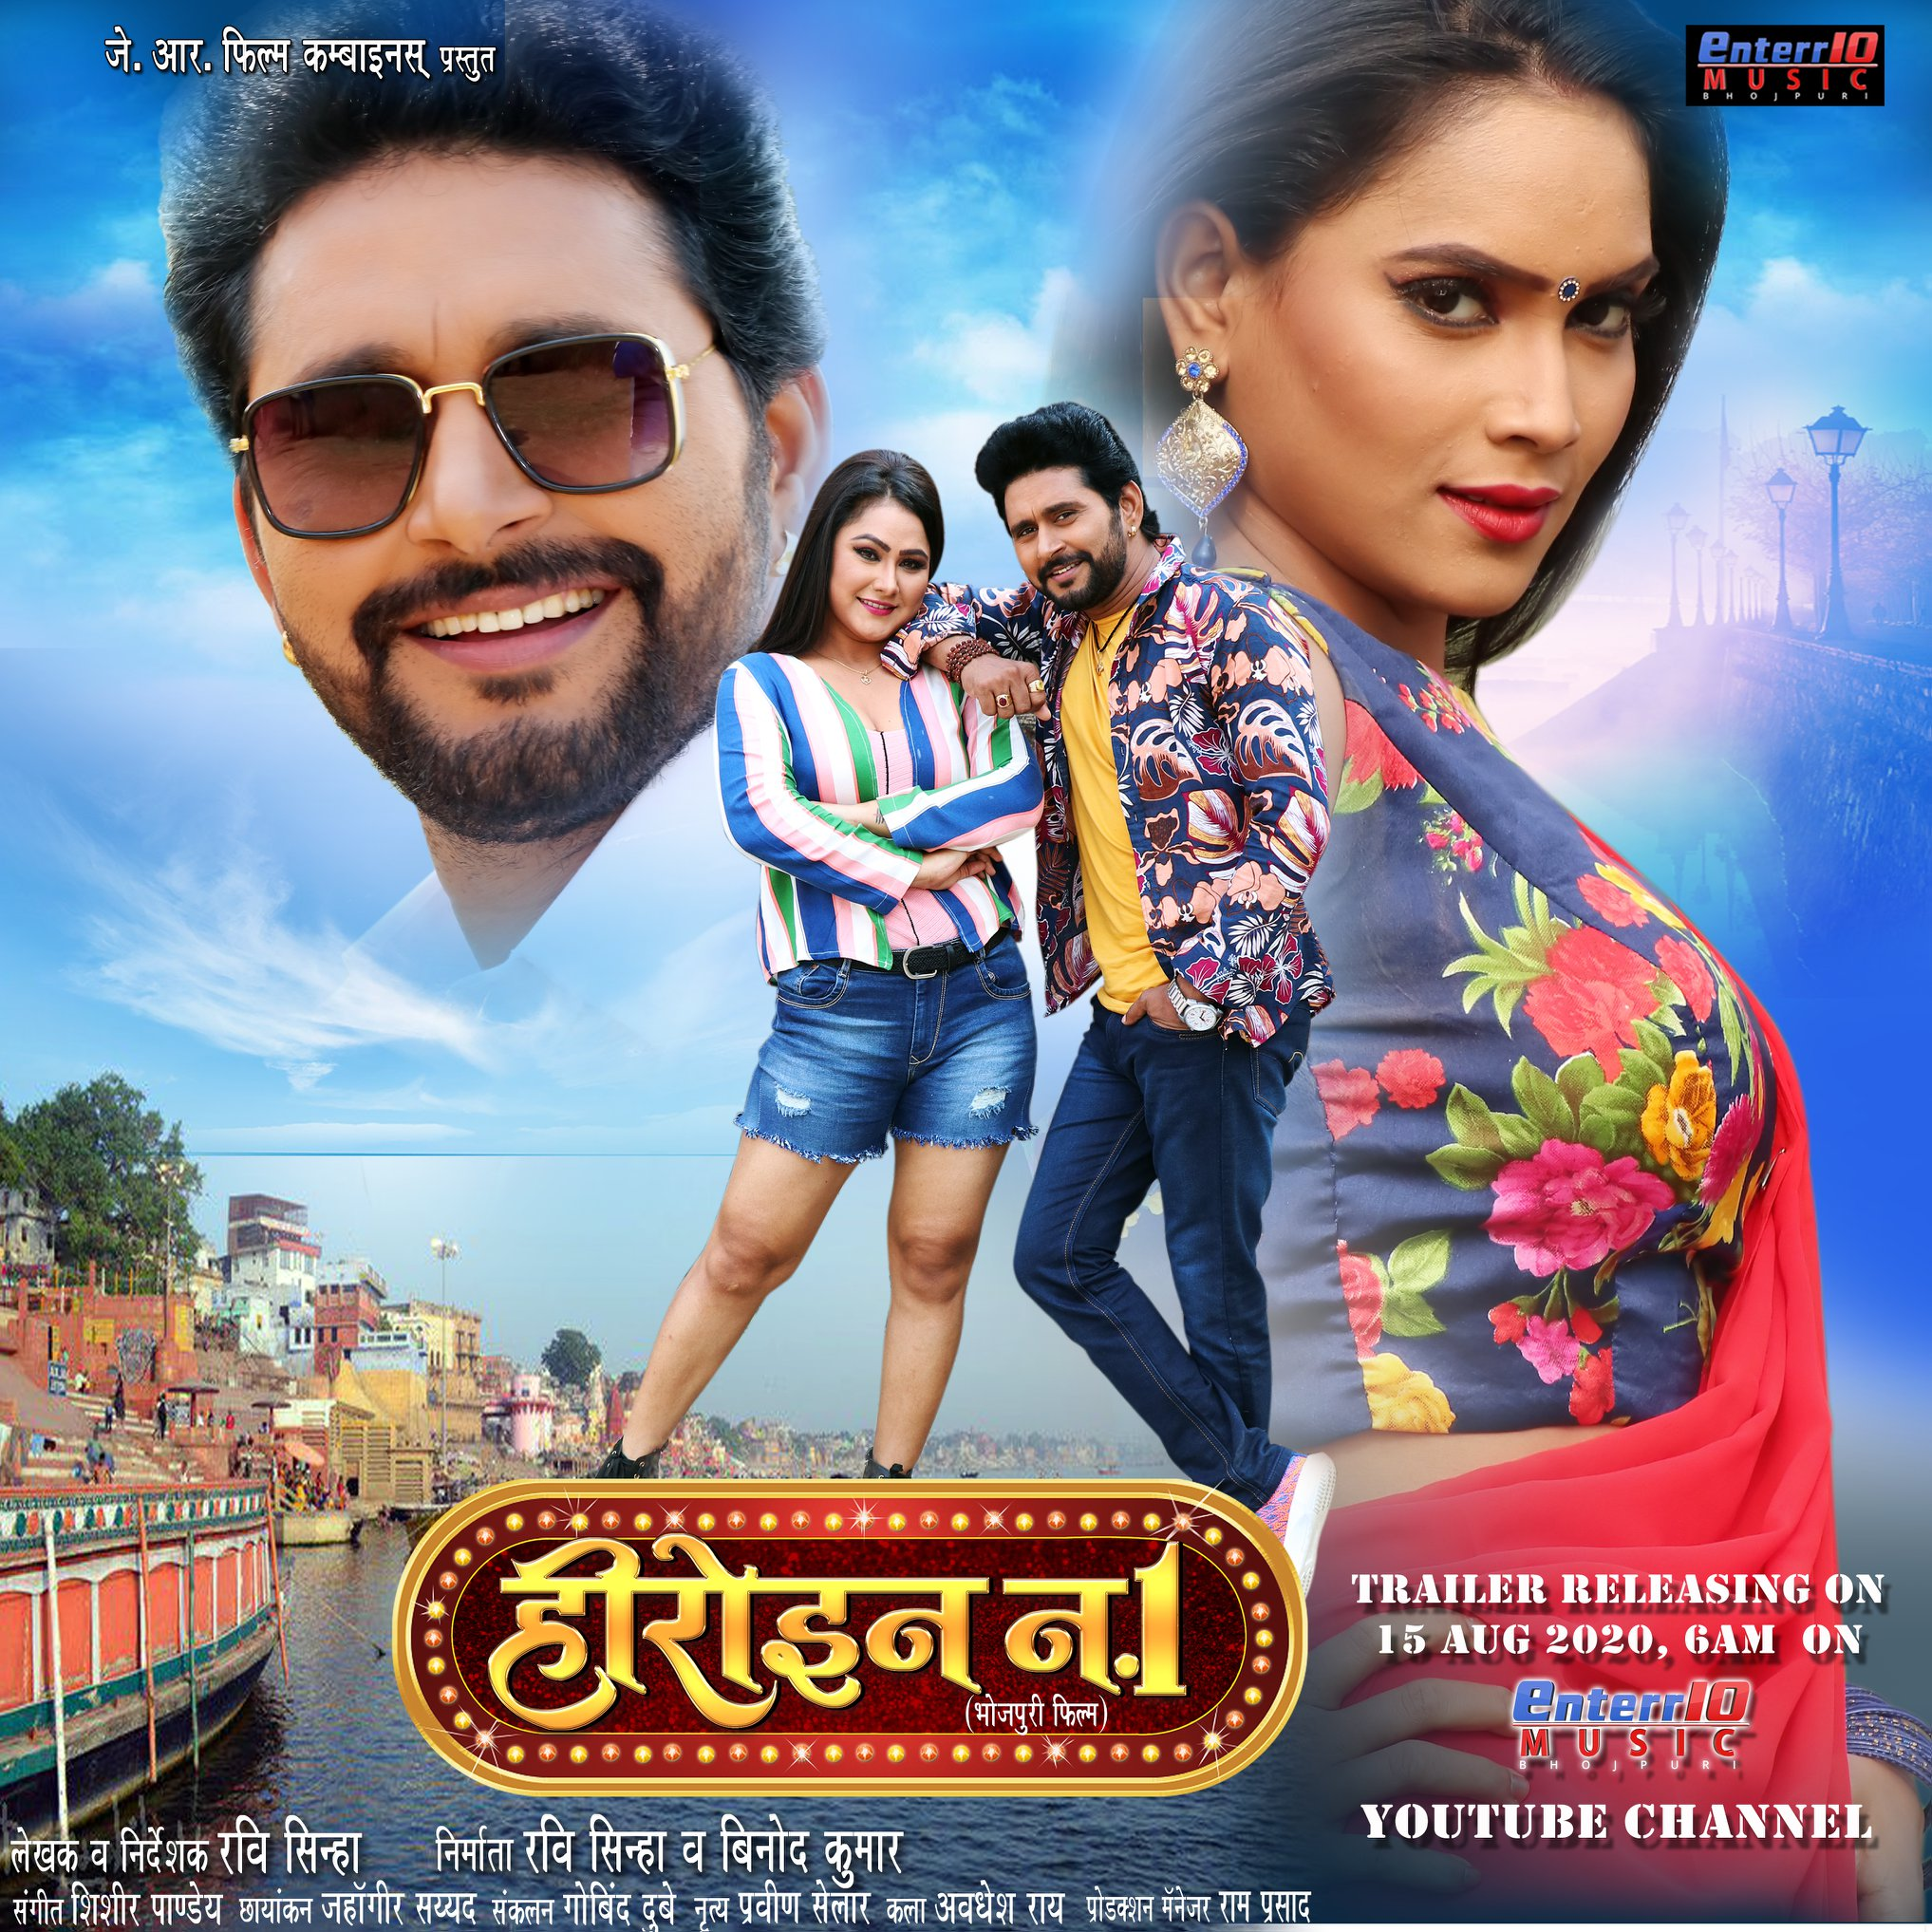 Heroin No 1 (2021) Bhojpuri Movie HDTVRip x264 AAC 400MB Download